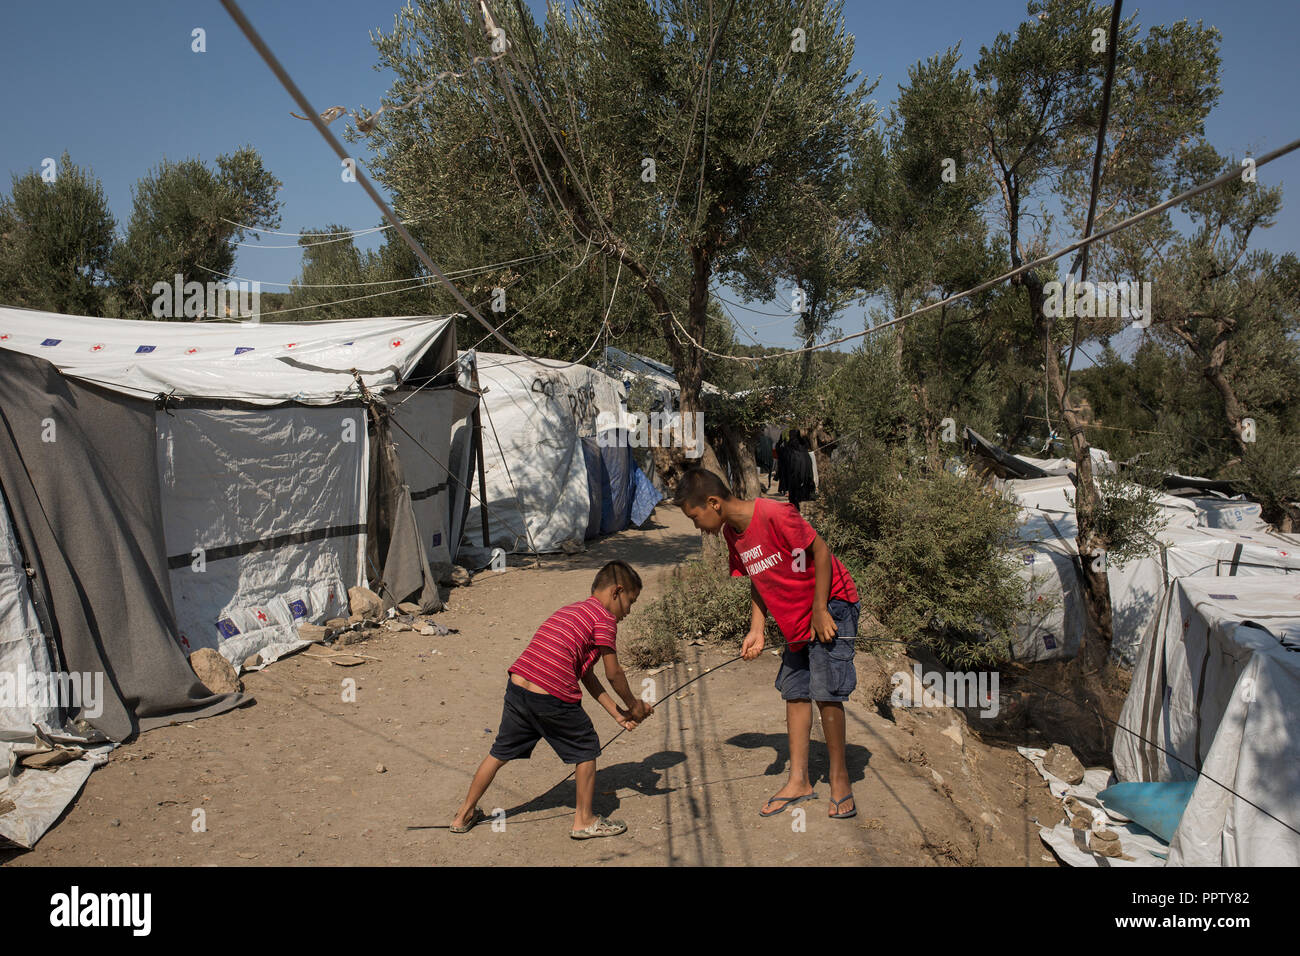 Moira, Greece. 24th Sep, 2018. Children play in a temporary camp next to the refugee camp Moria between tents. Credit: Socrates Baltagiannis/dpa/Alamy Live News - Stock Image